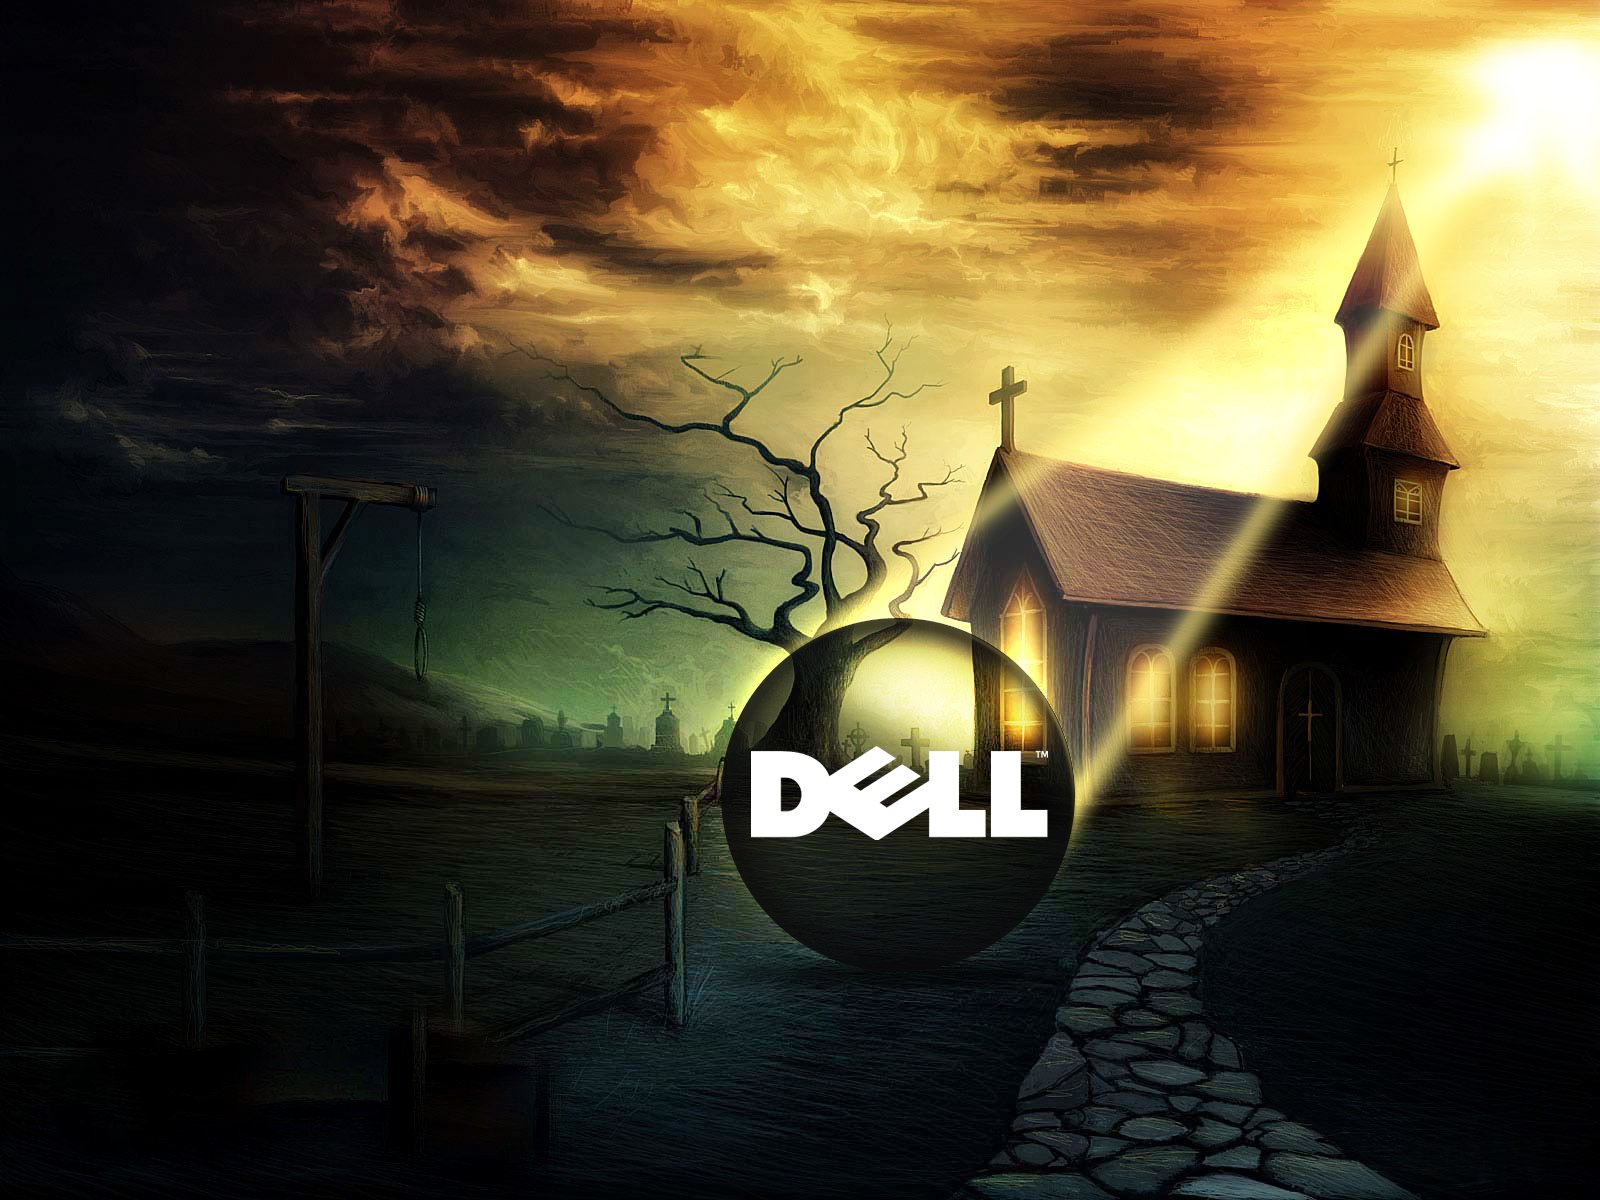 Hd Dell Backgrounds Dell Wallpaper Images For Windows: Dell HD Wallpapers 1080p